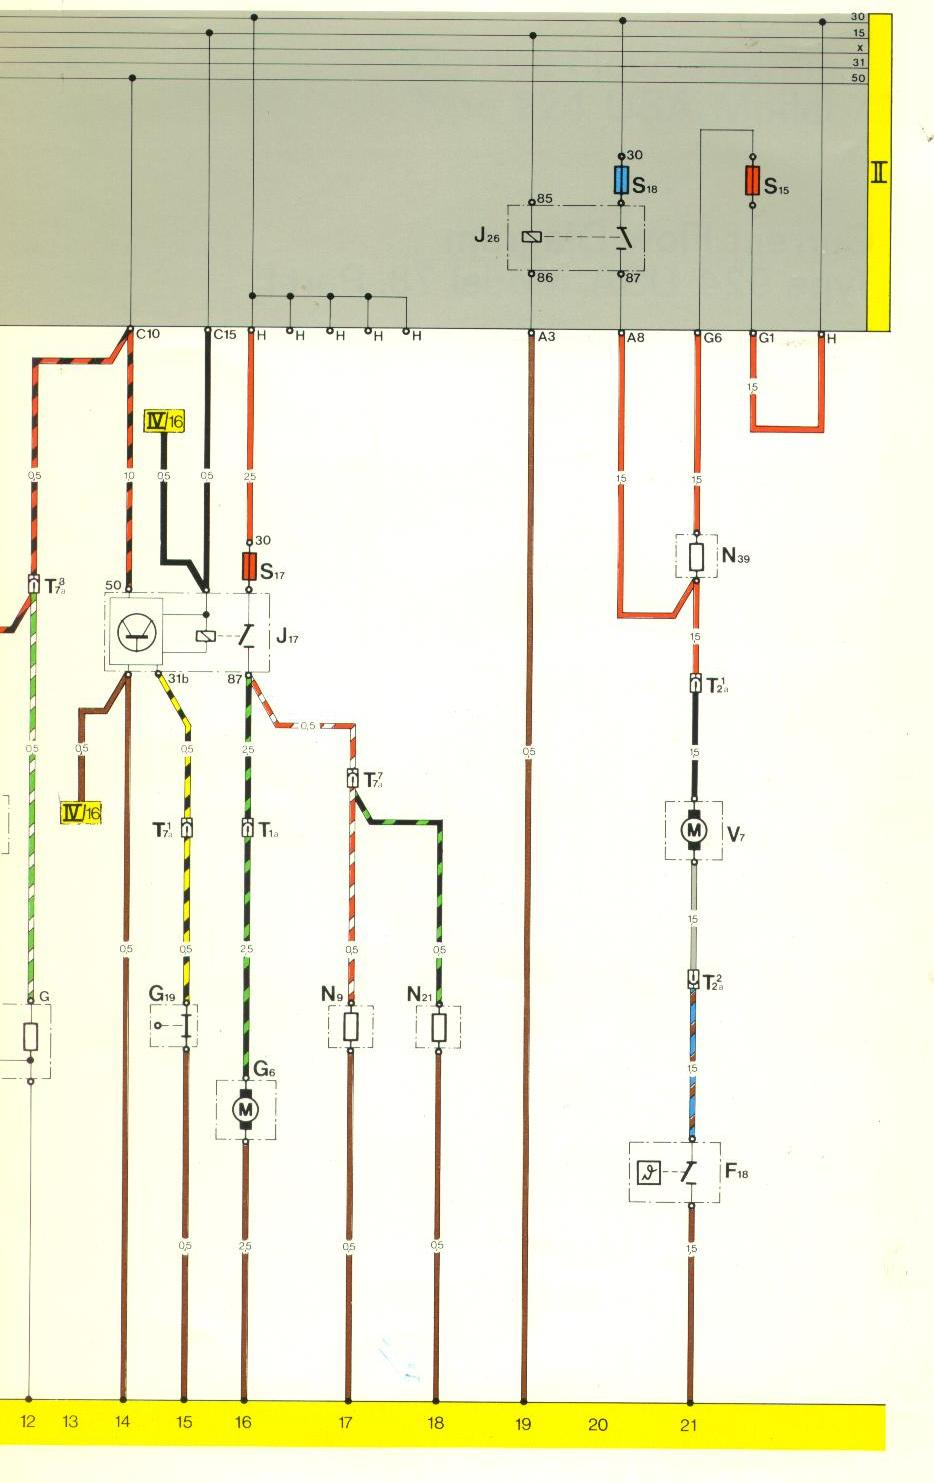 medium resolution of  circuit in current track 21 j 26 is the fan relay v7 is the fan motor f 18 is the temperature switch and the 21 terminus at the bottom of the page is